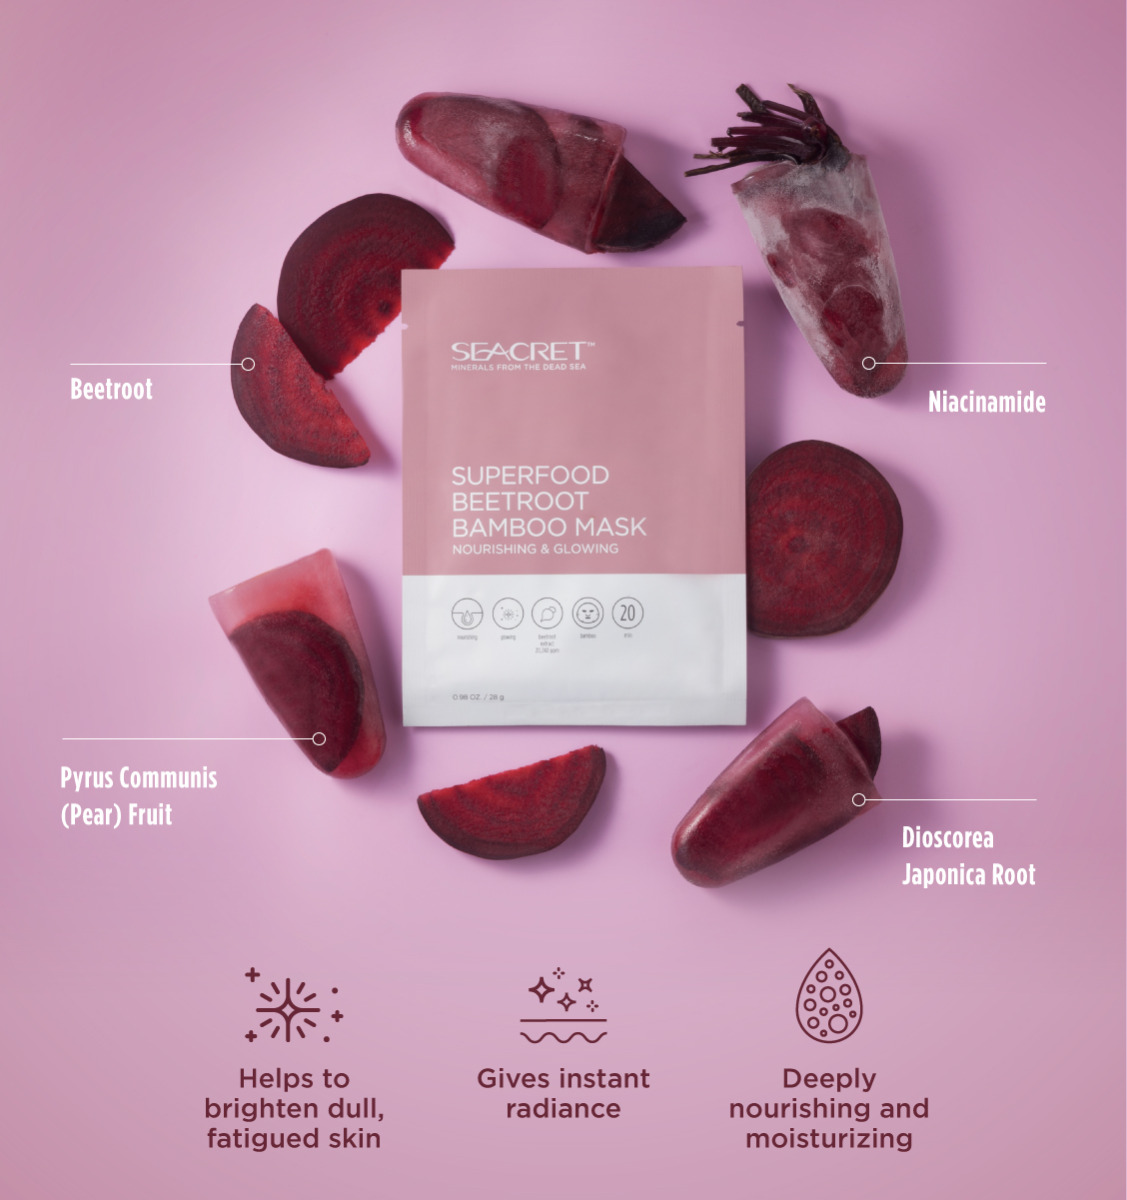 SuperFood Beetroot Bamboo Mask